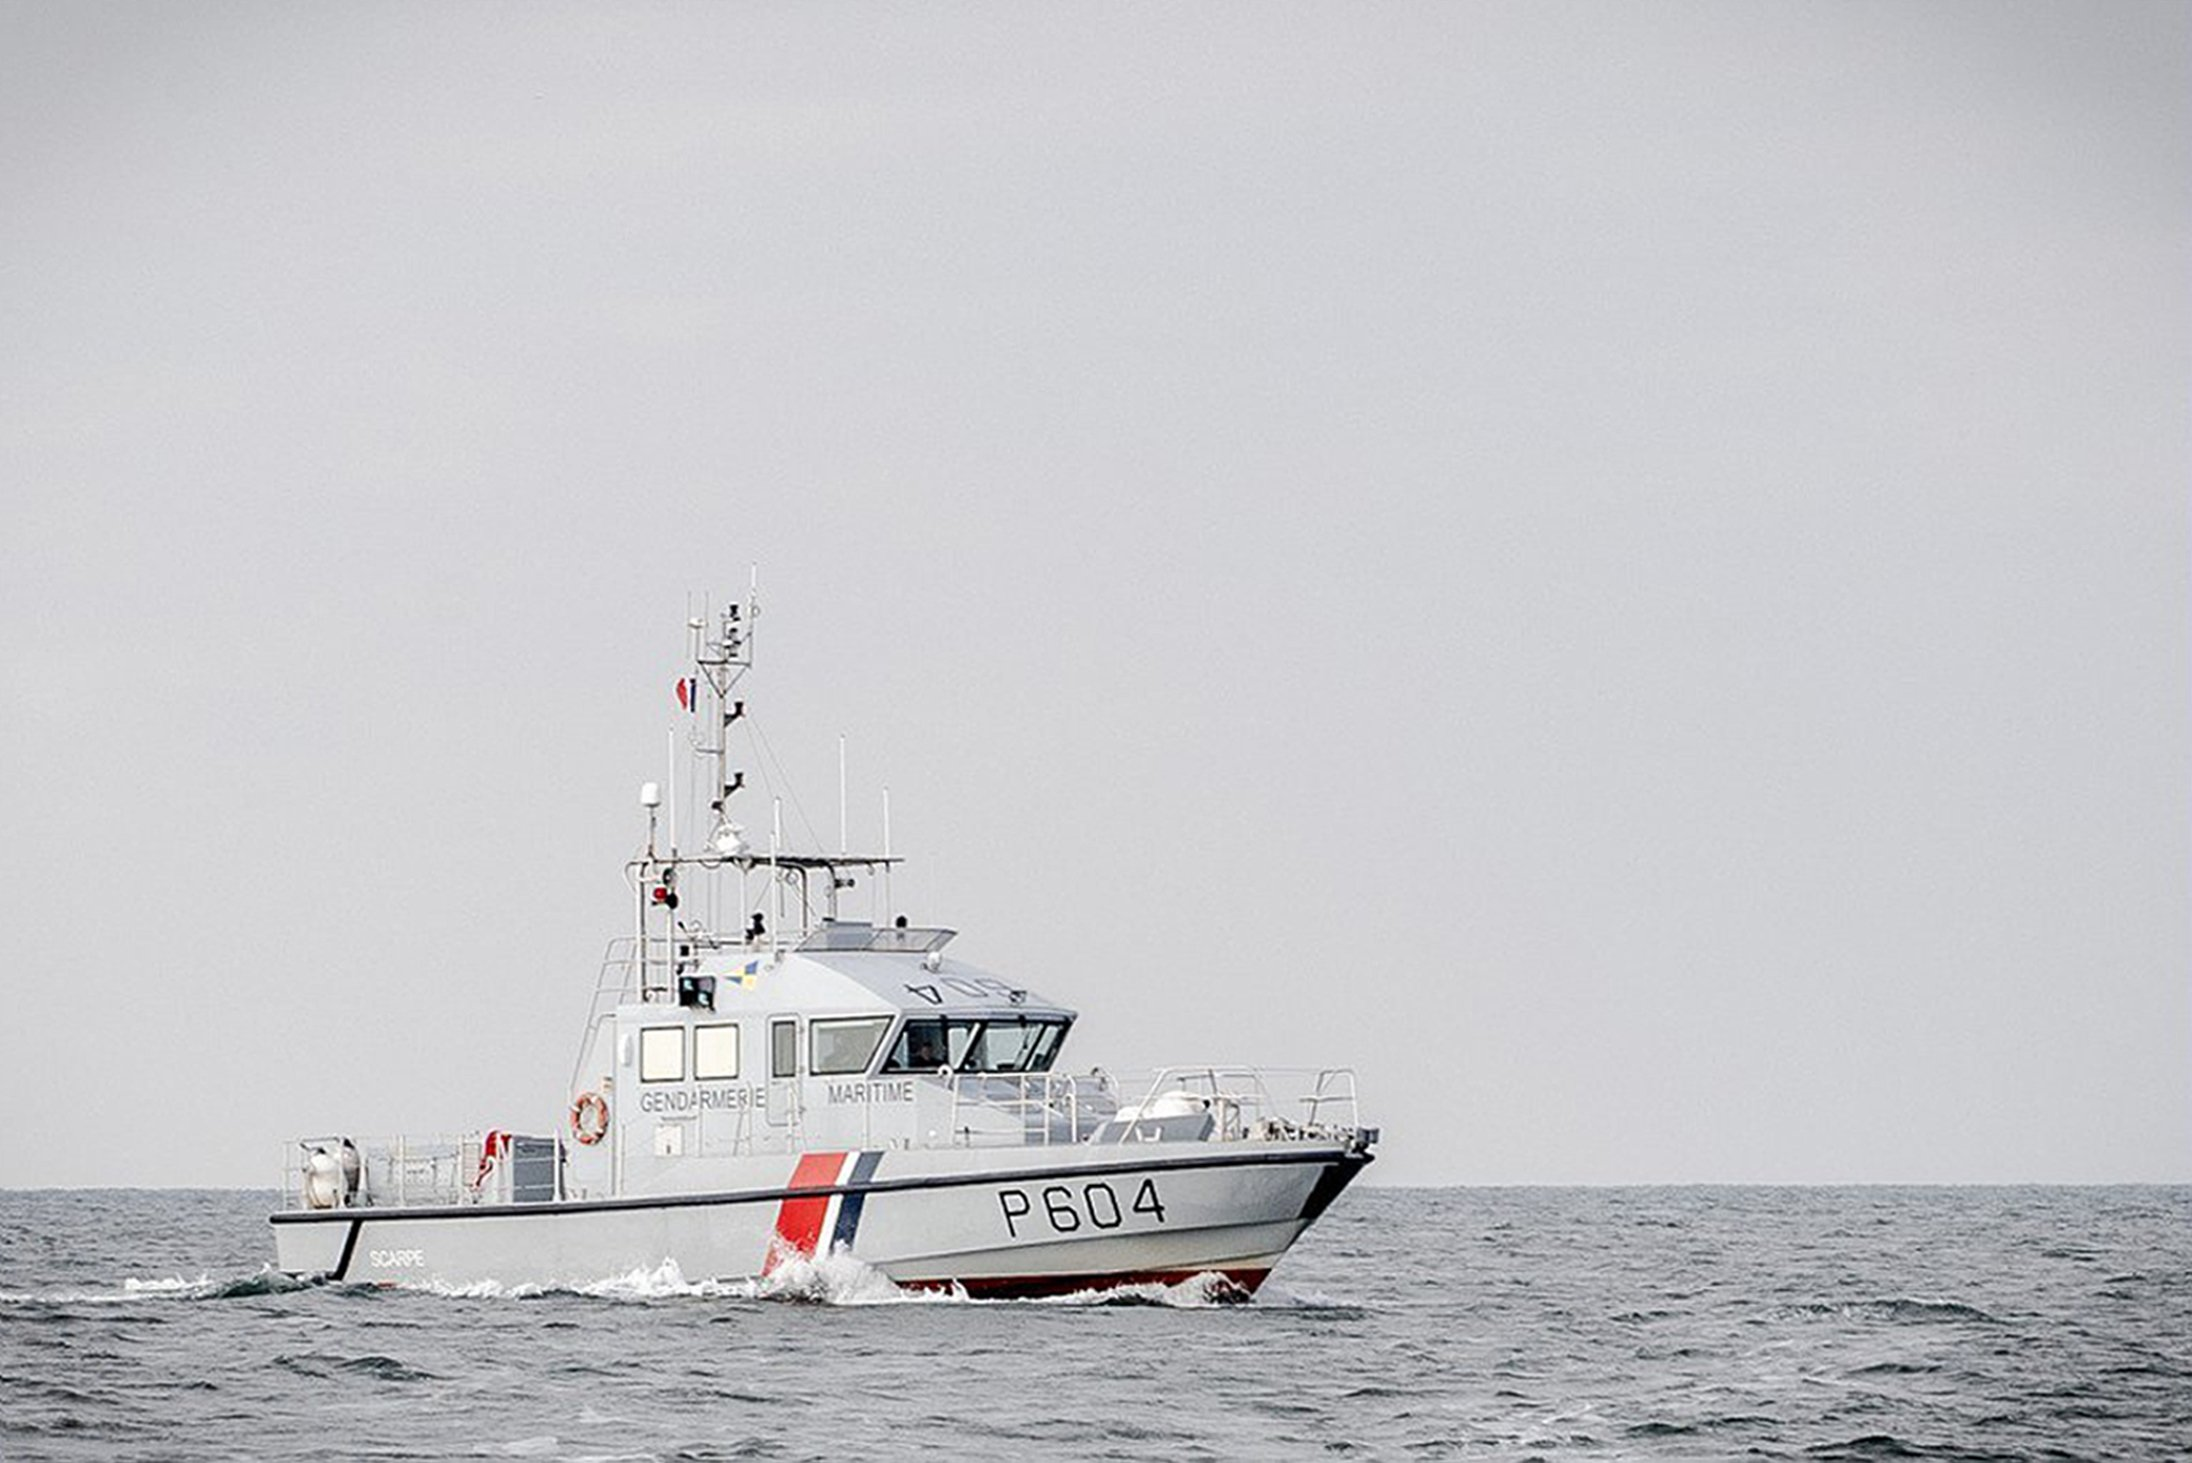 Migrants feared dead after boat sinks off French coast